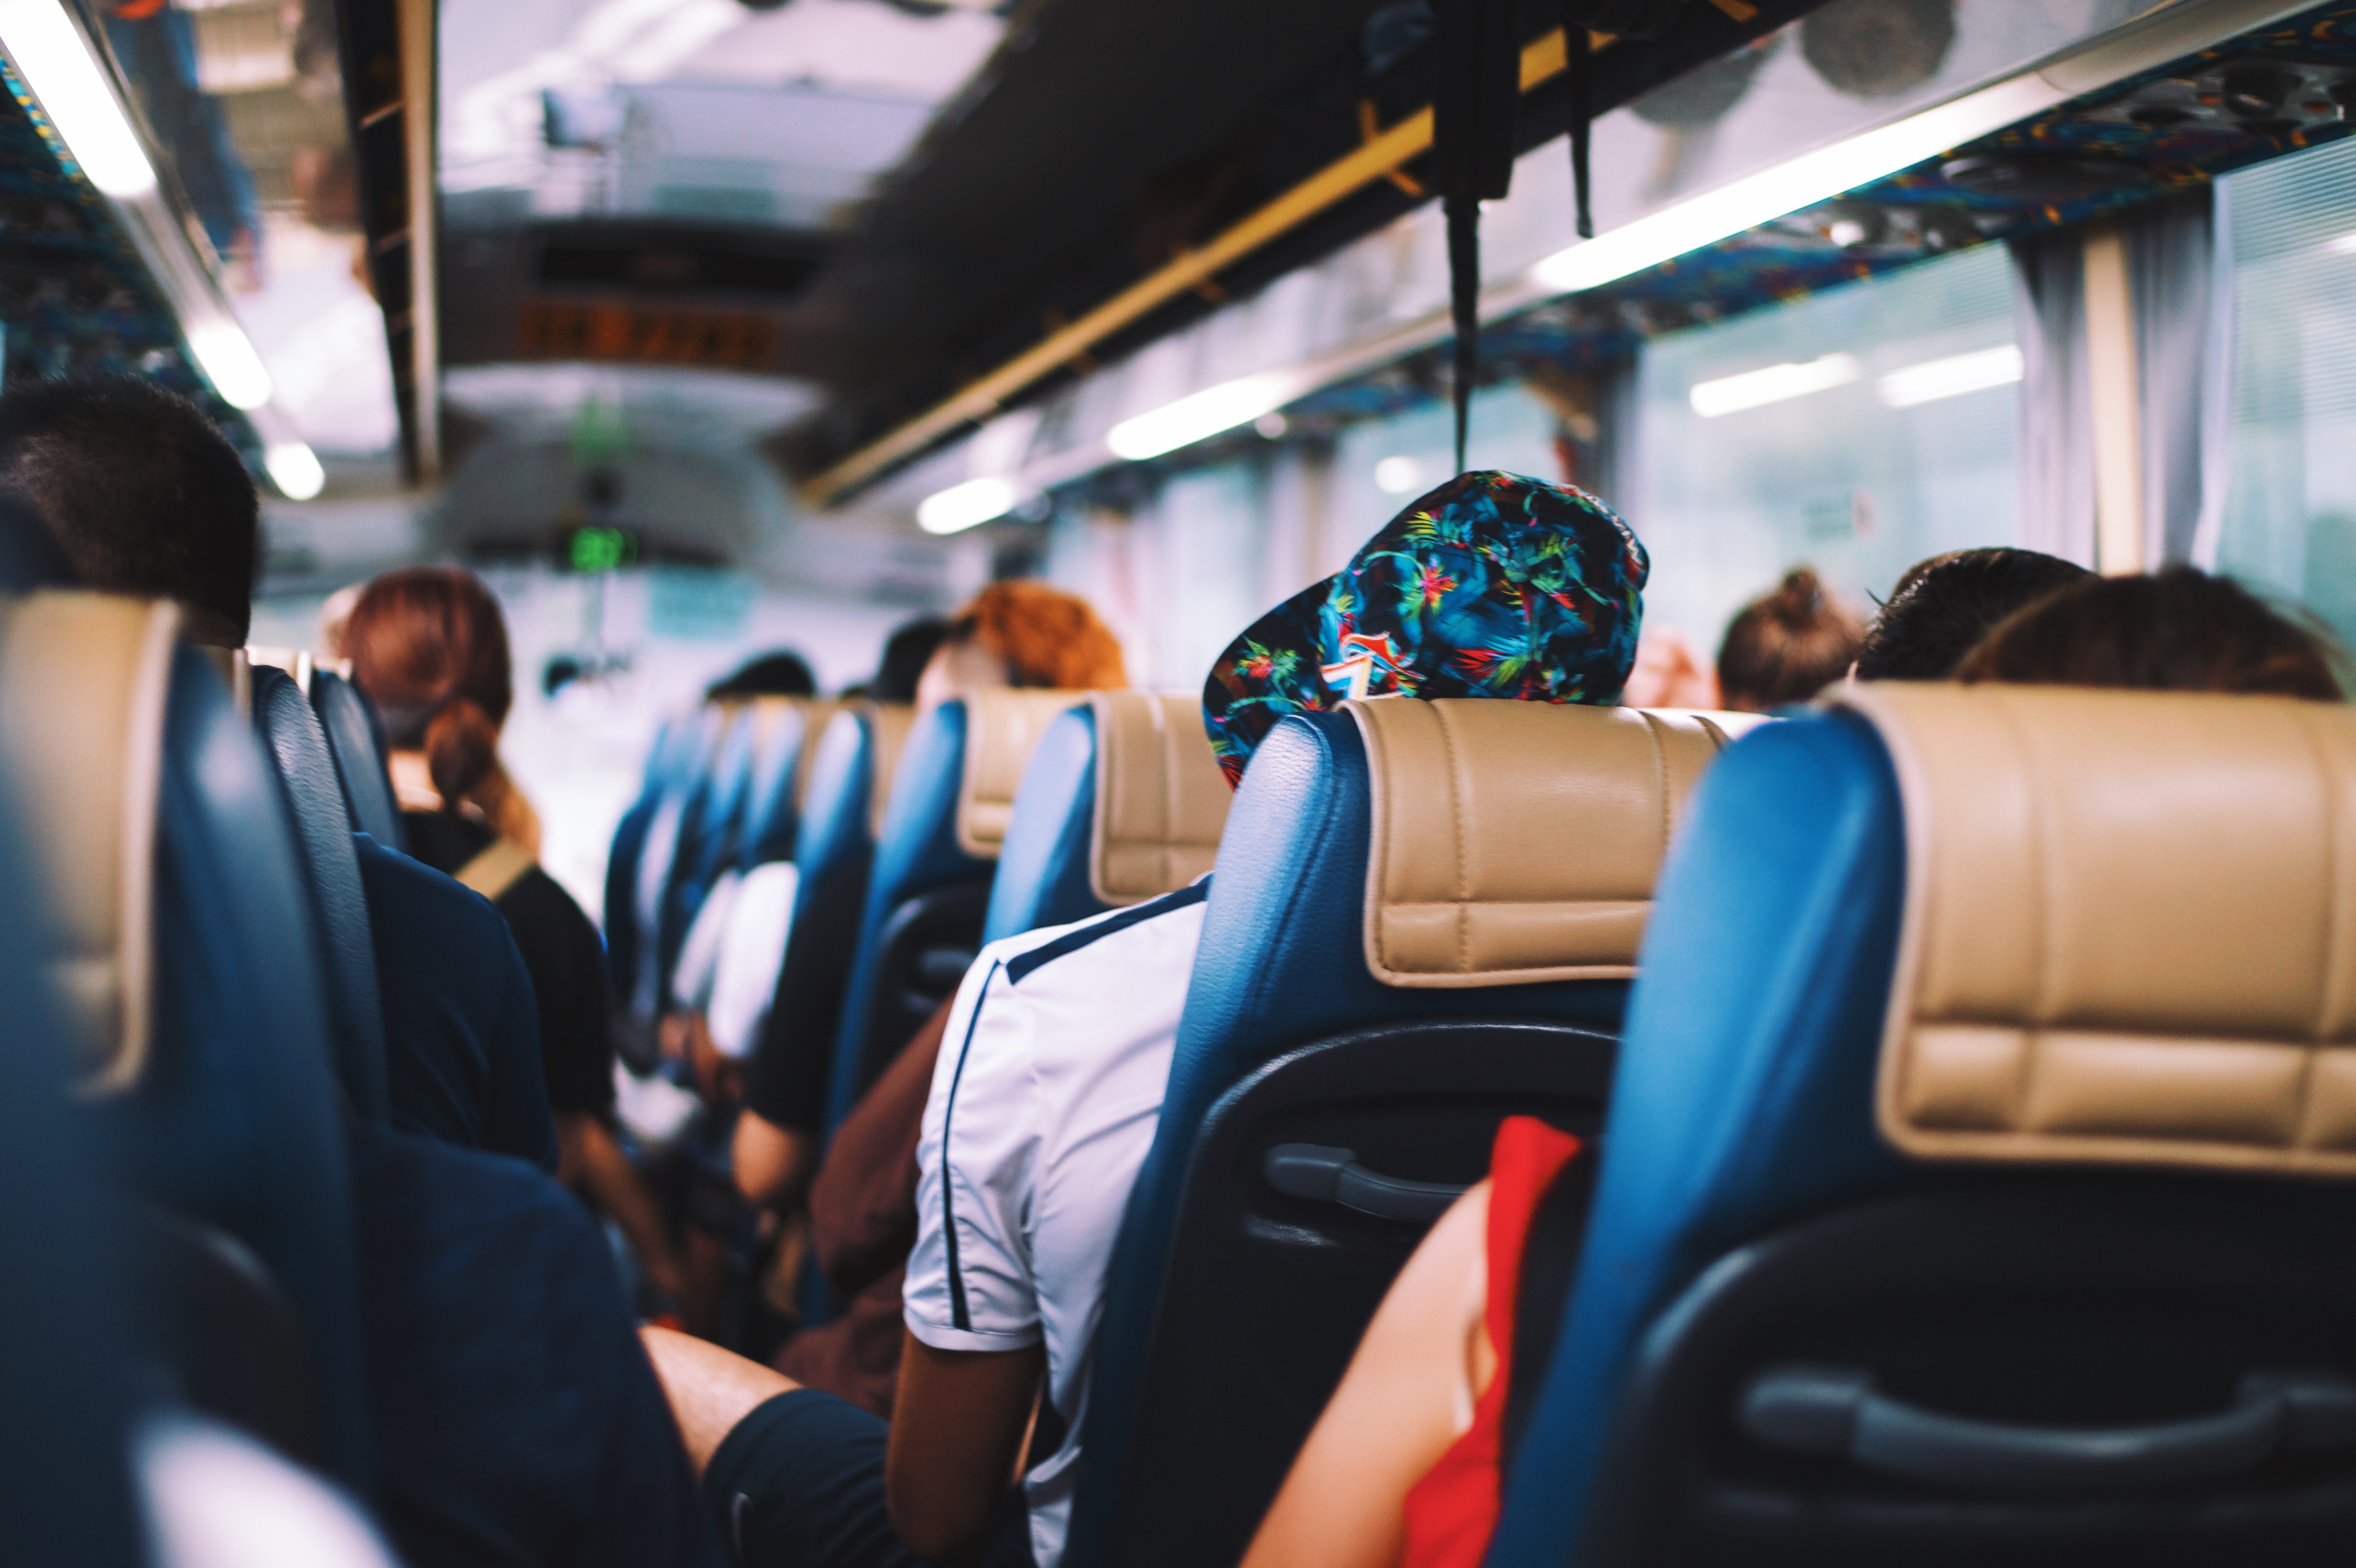 A back-to-front shot of a bus full of people in blue and tan seats